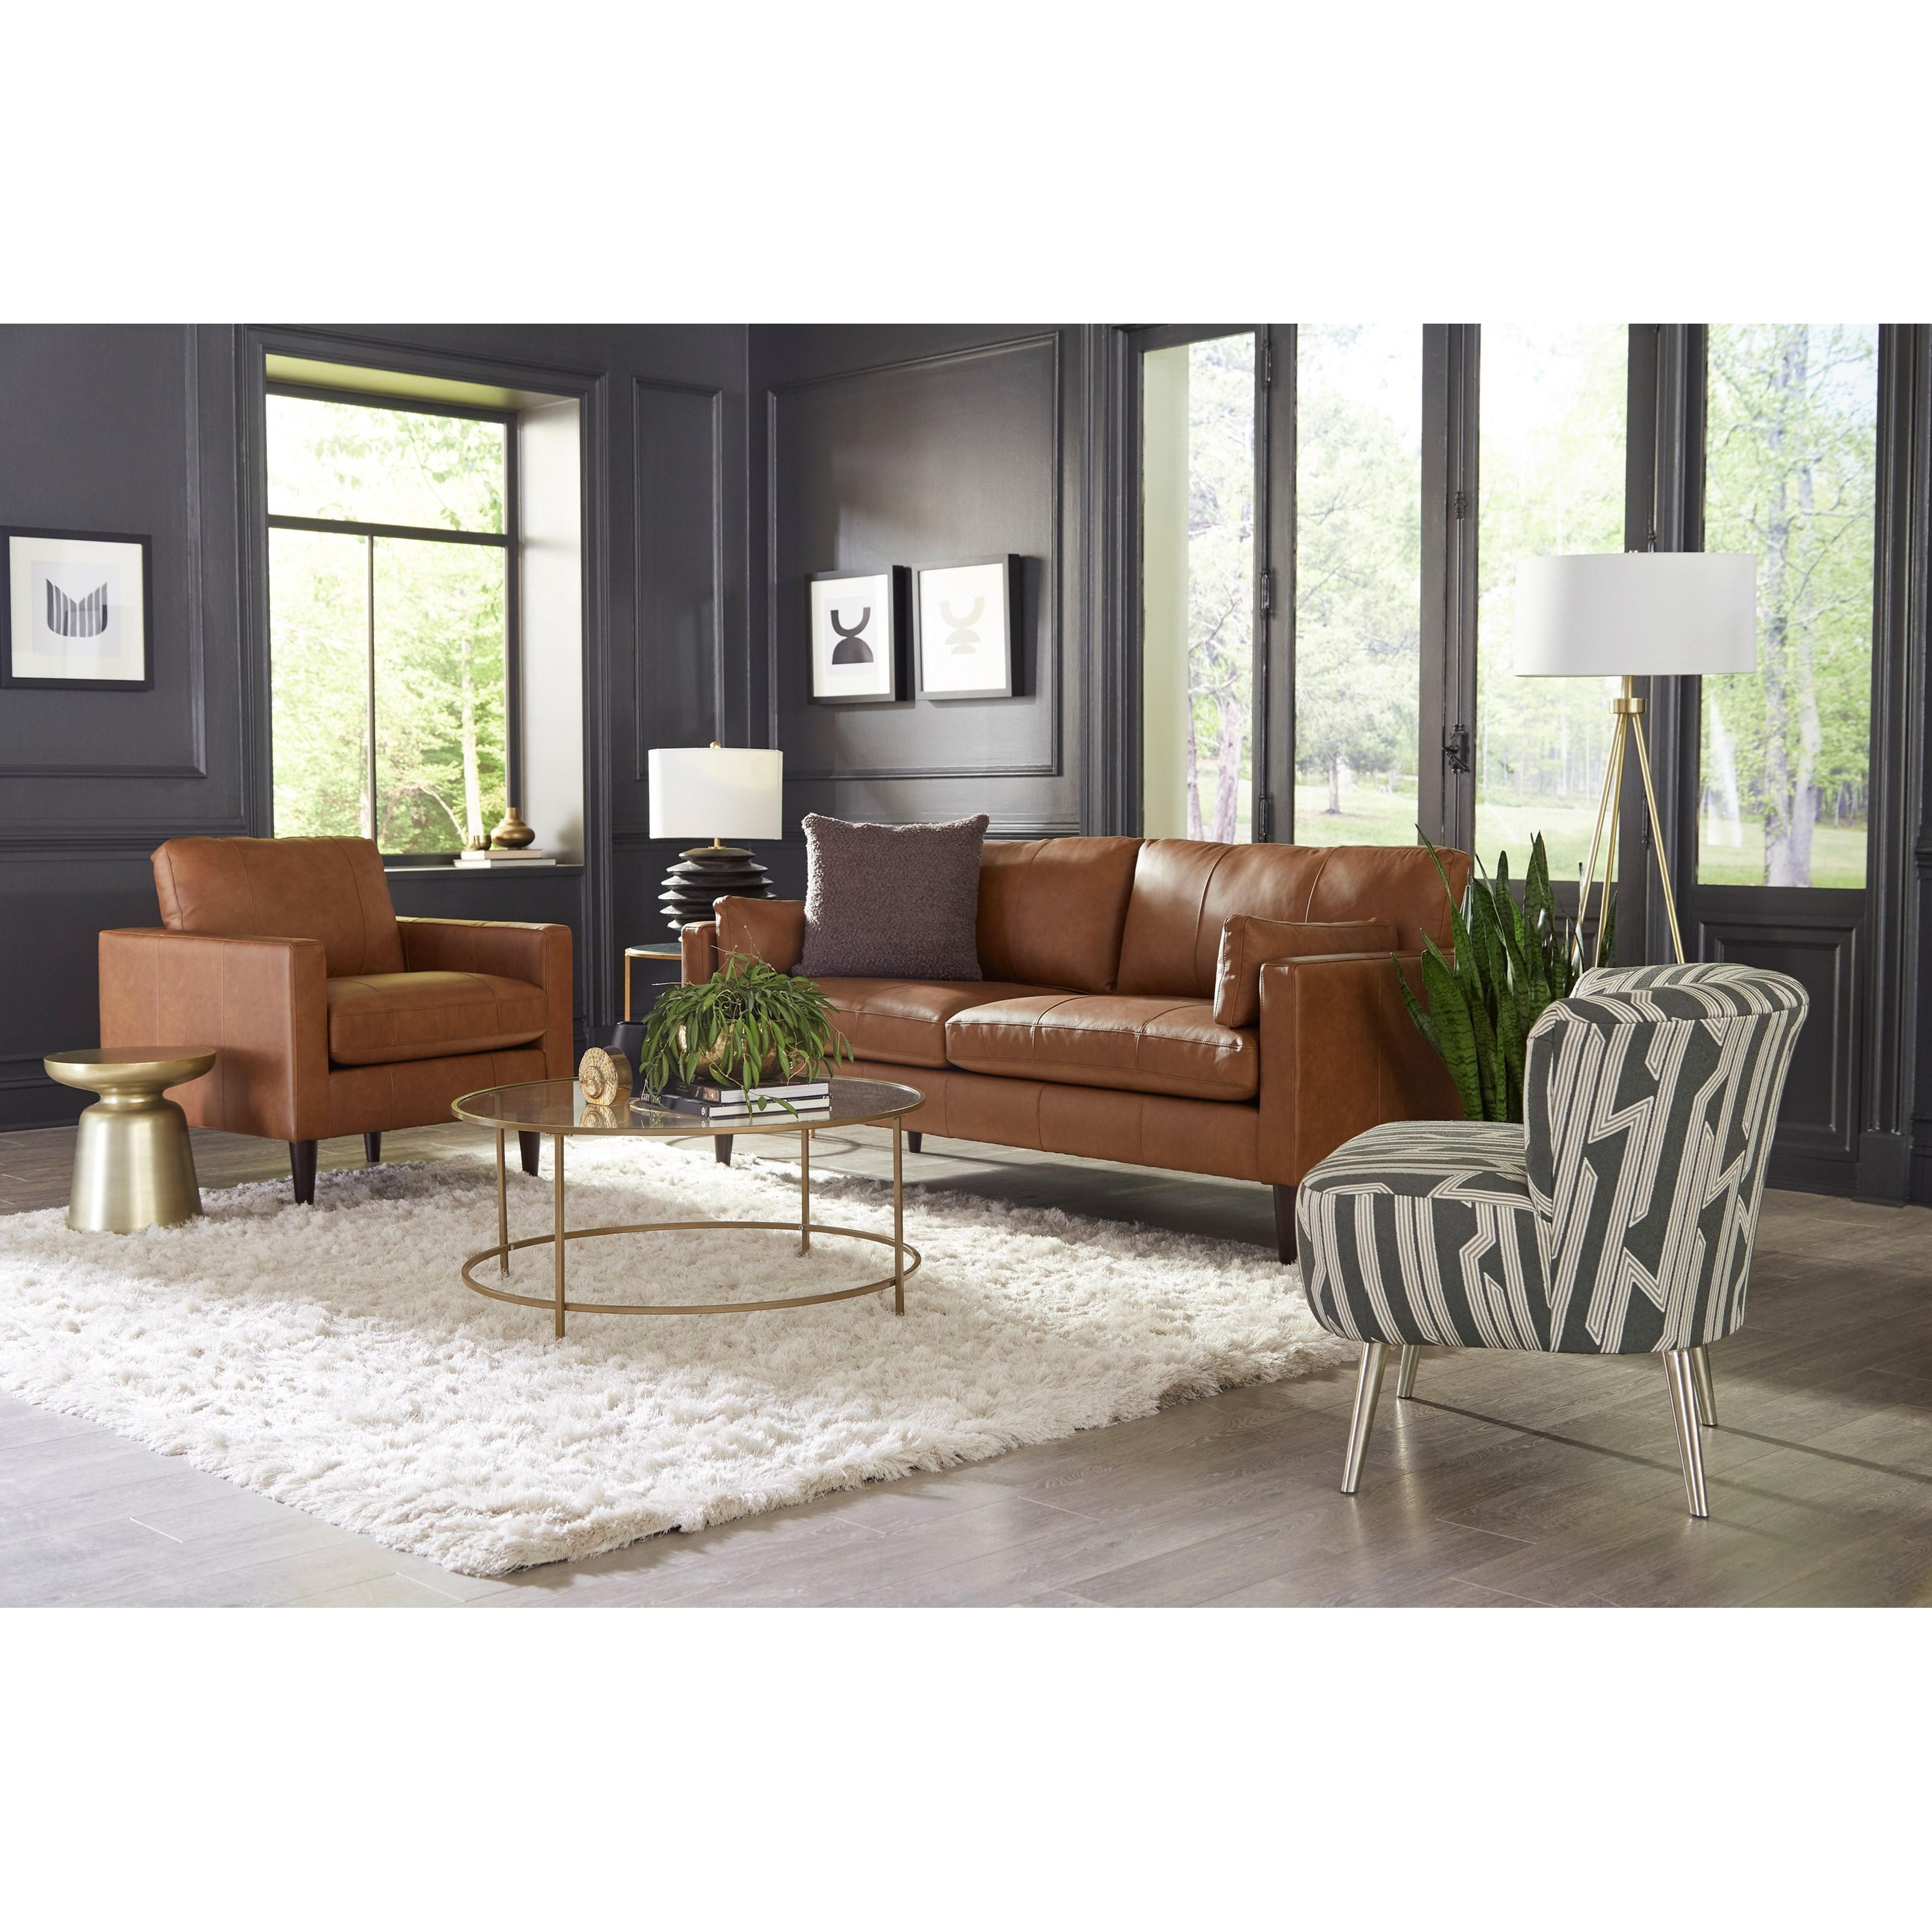 Trafton Living Room Group by Best Home Furnishings at Baer's Furniture